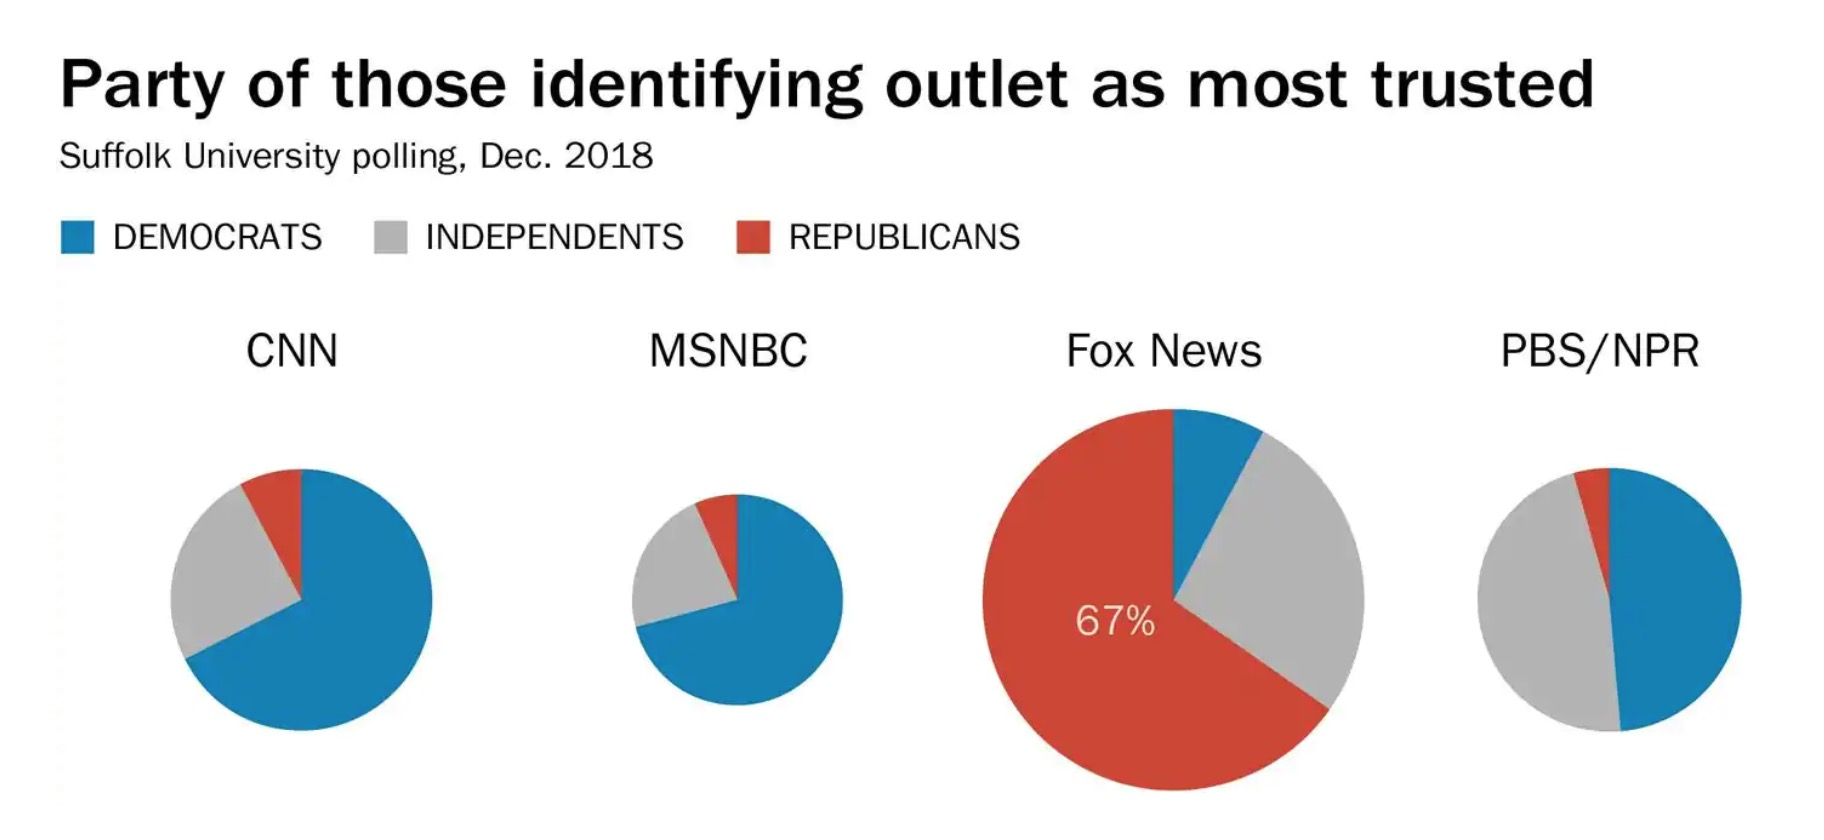 Partisanship of news consumers